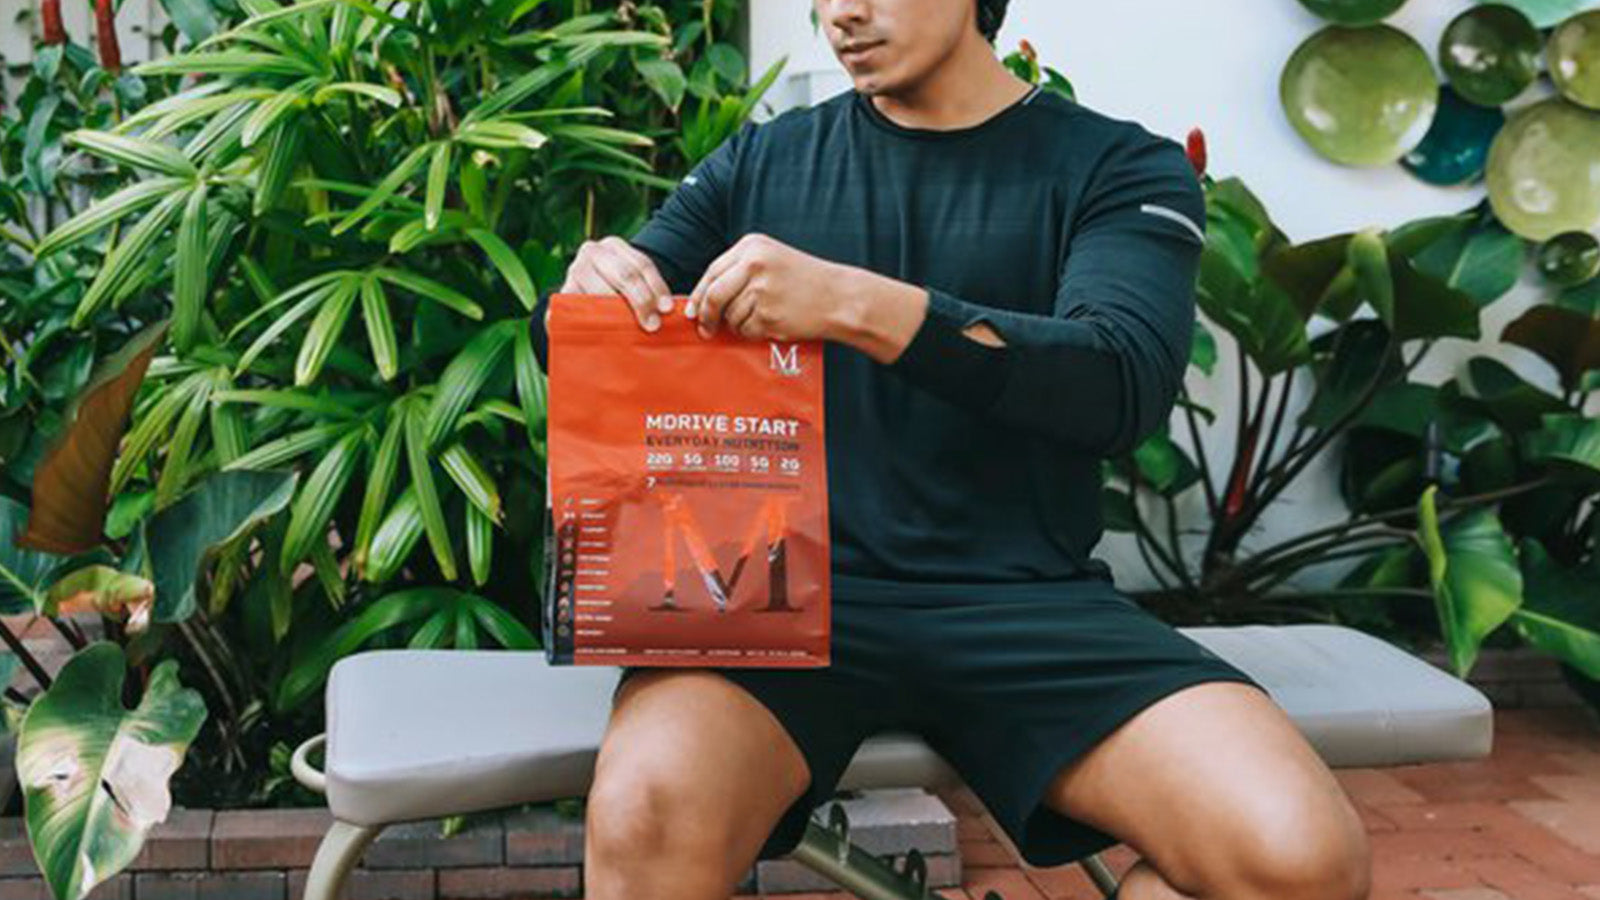 Protein Powder Blend Of 2020 For Muscle: Mdrive Start